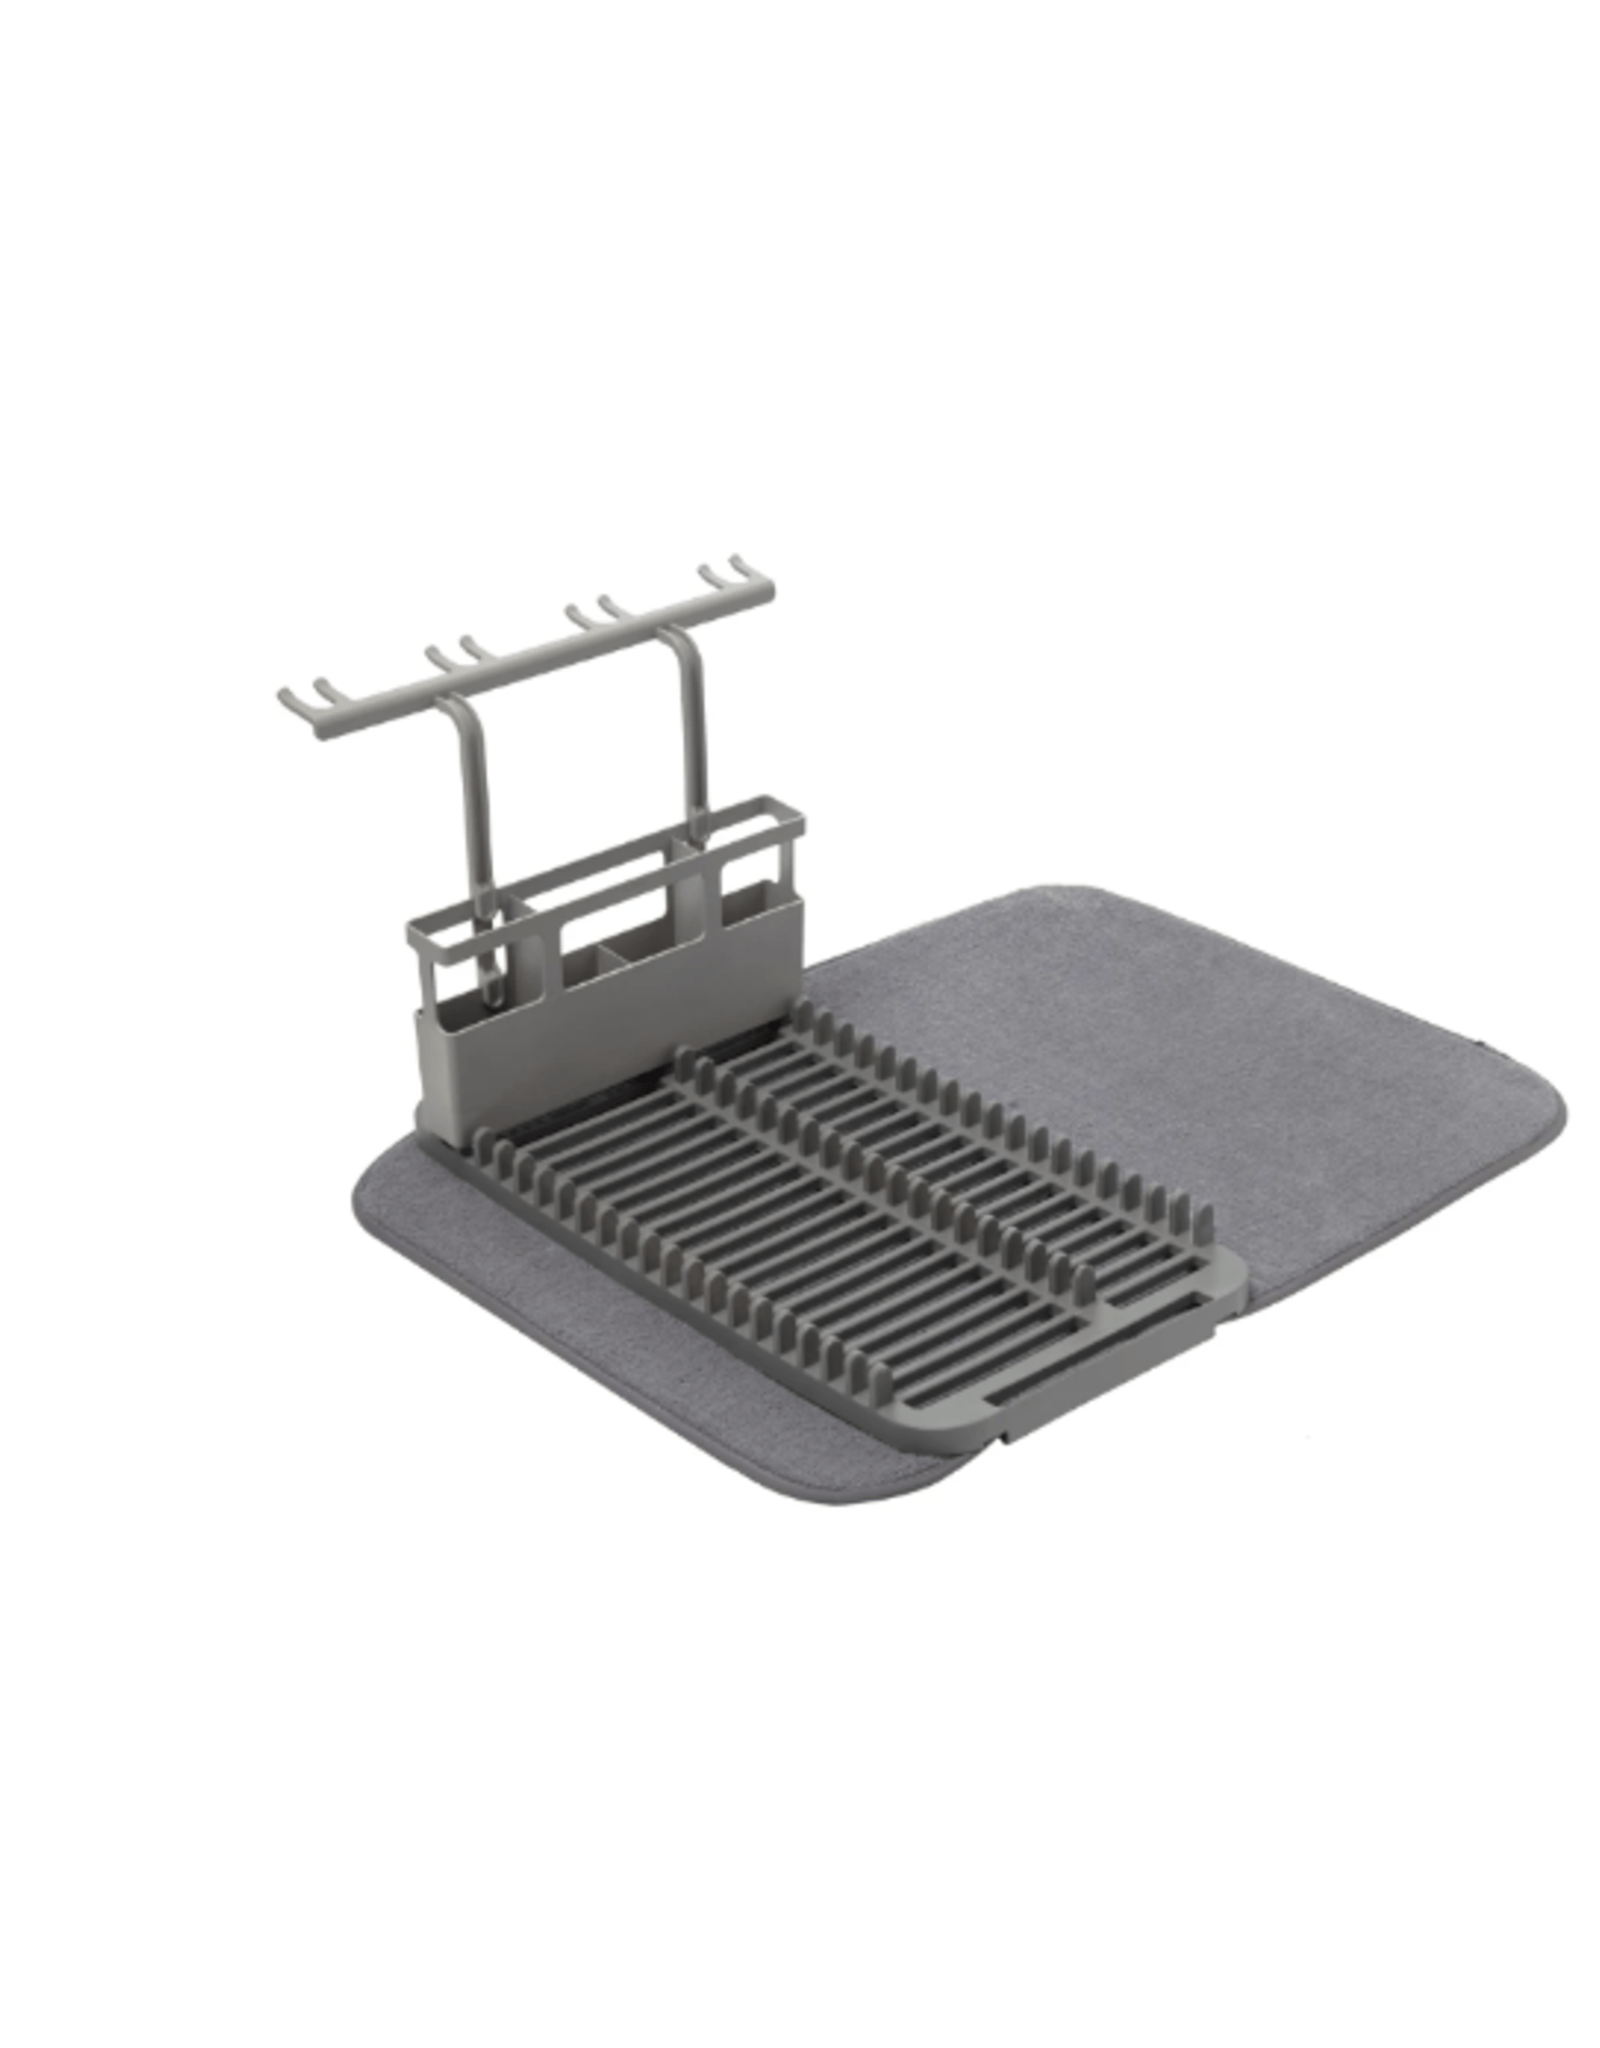 umbra udry dish drying mat and glass rack charcoal